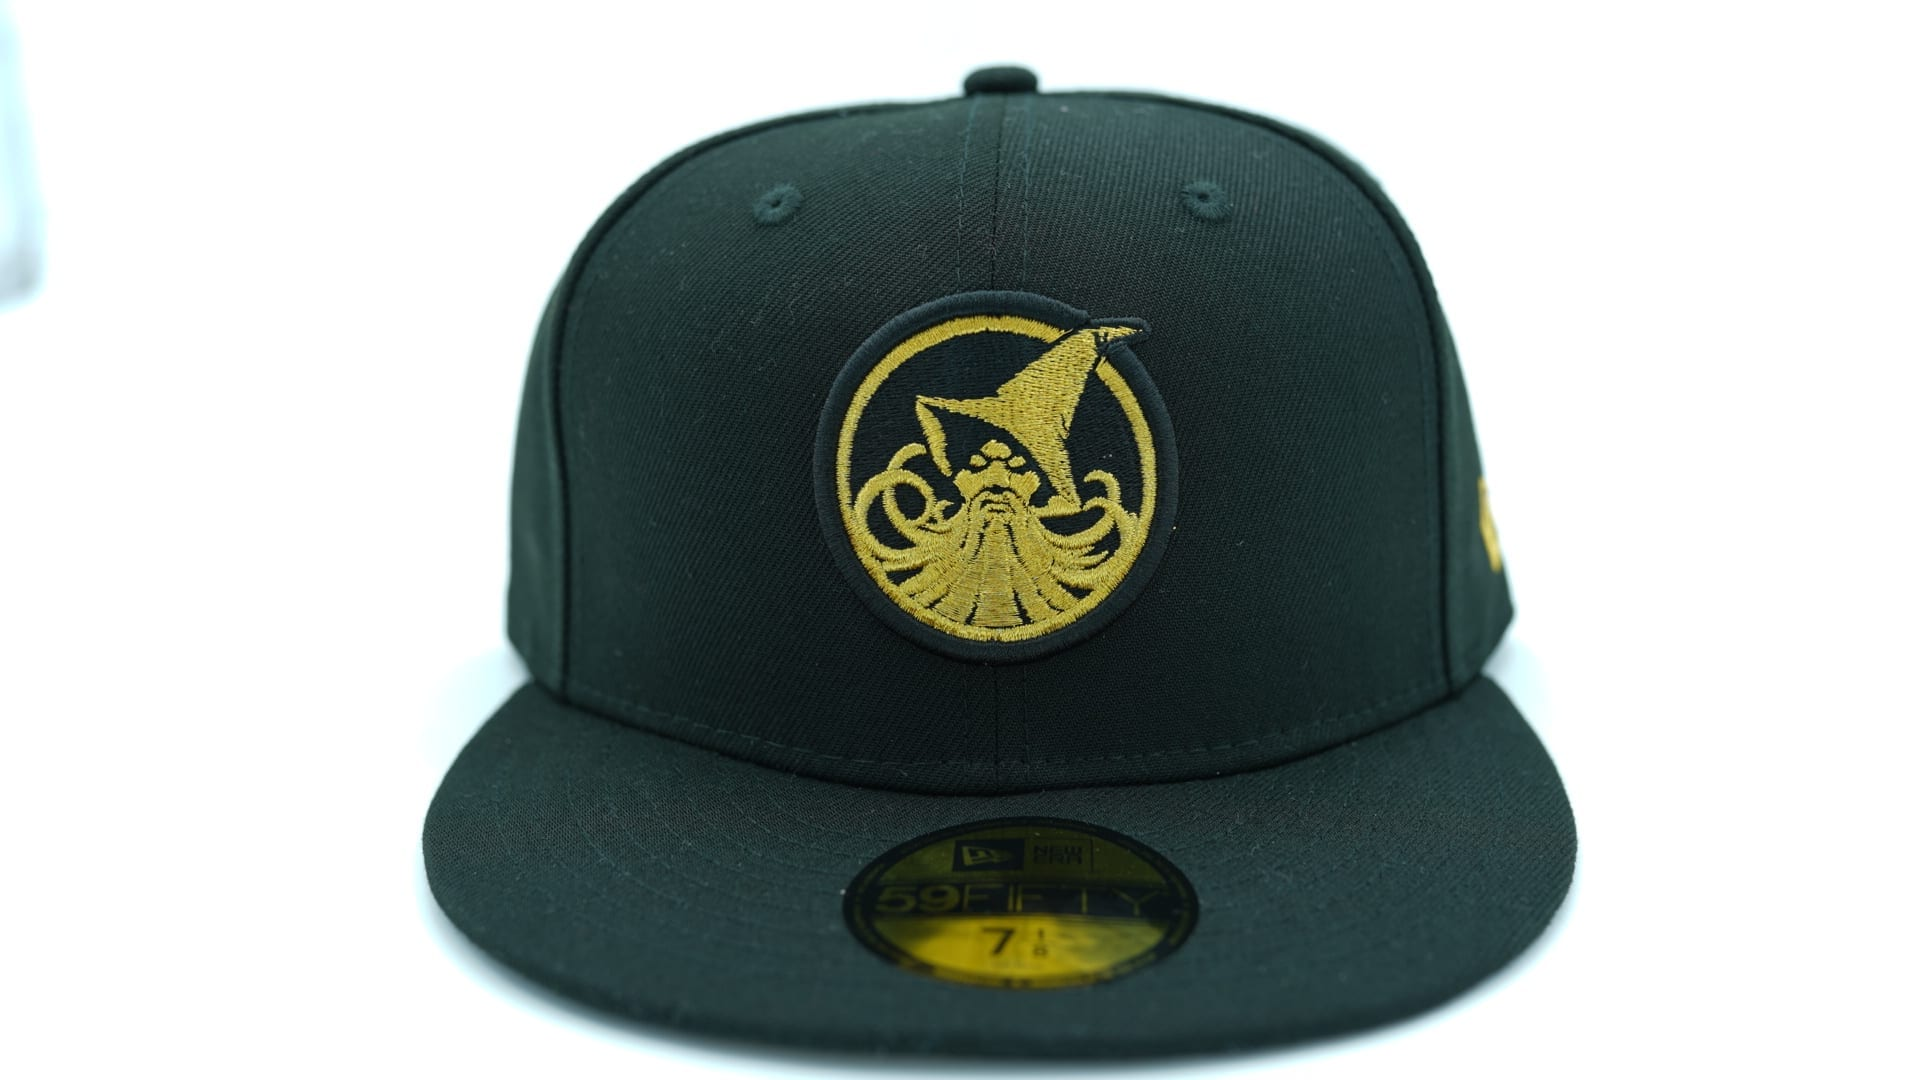 Olmecas de Tabasco Degraded Gold 59FIfty Fitted Cap by NEW ERA x LMB